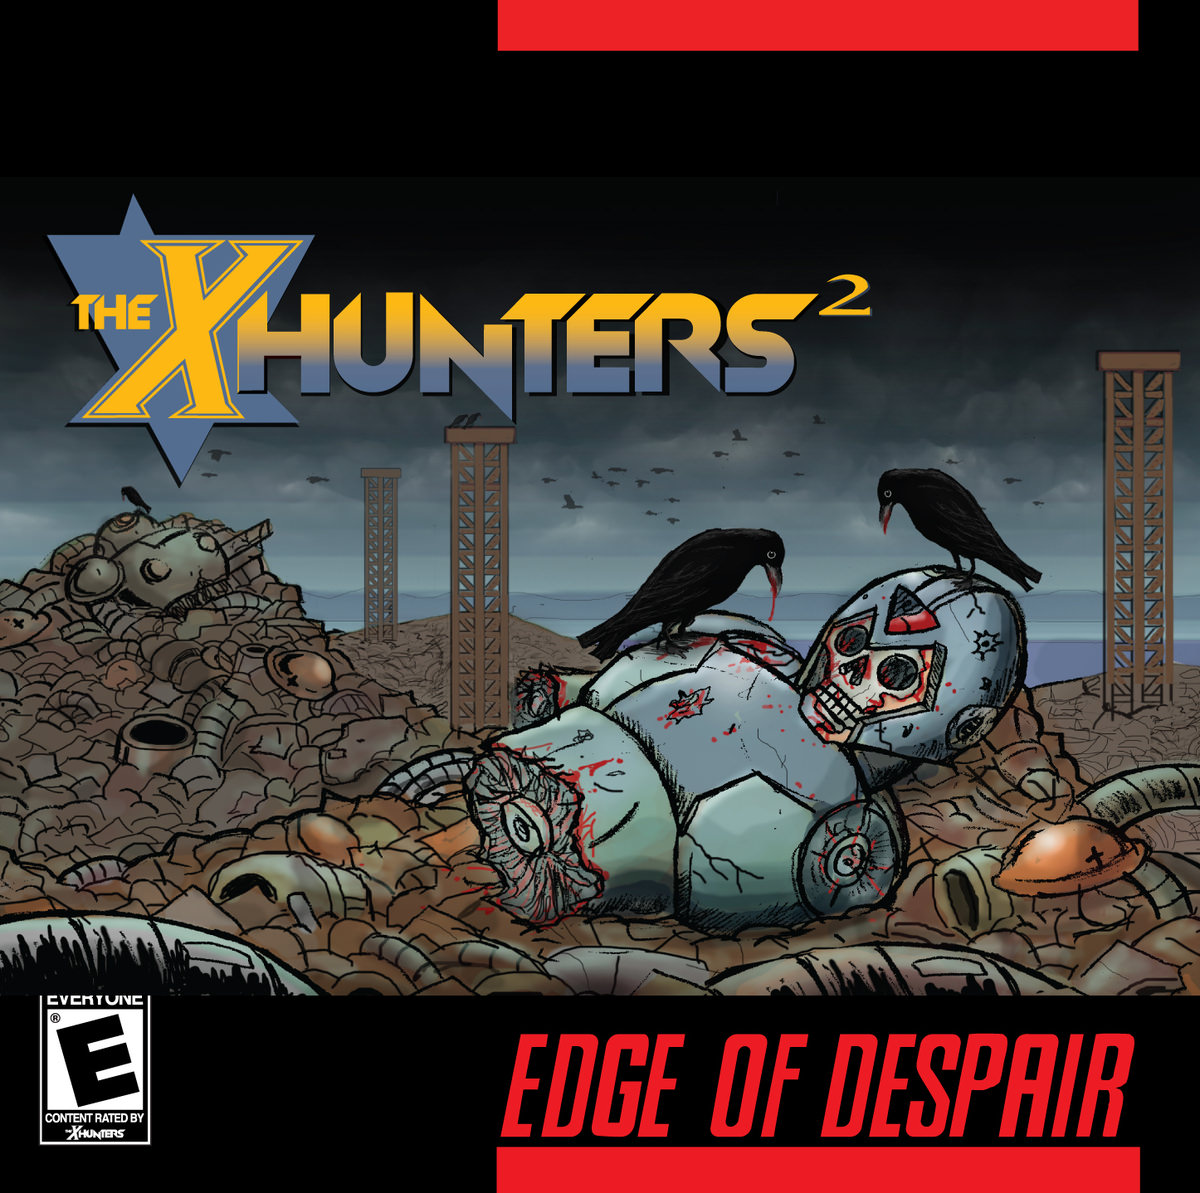 X-Hunters-Edge-of-Despair-MMX-VGM